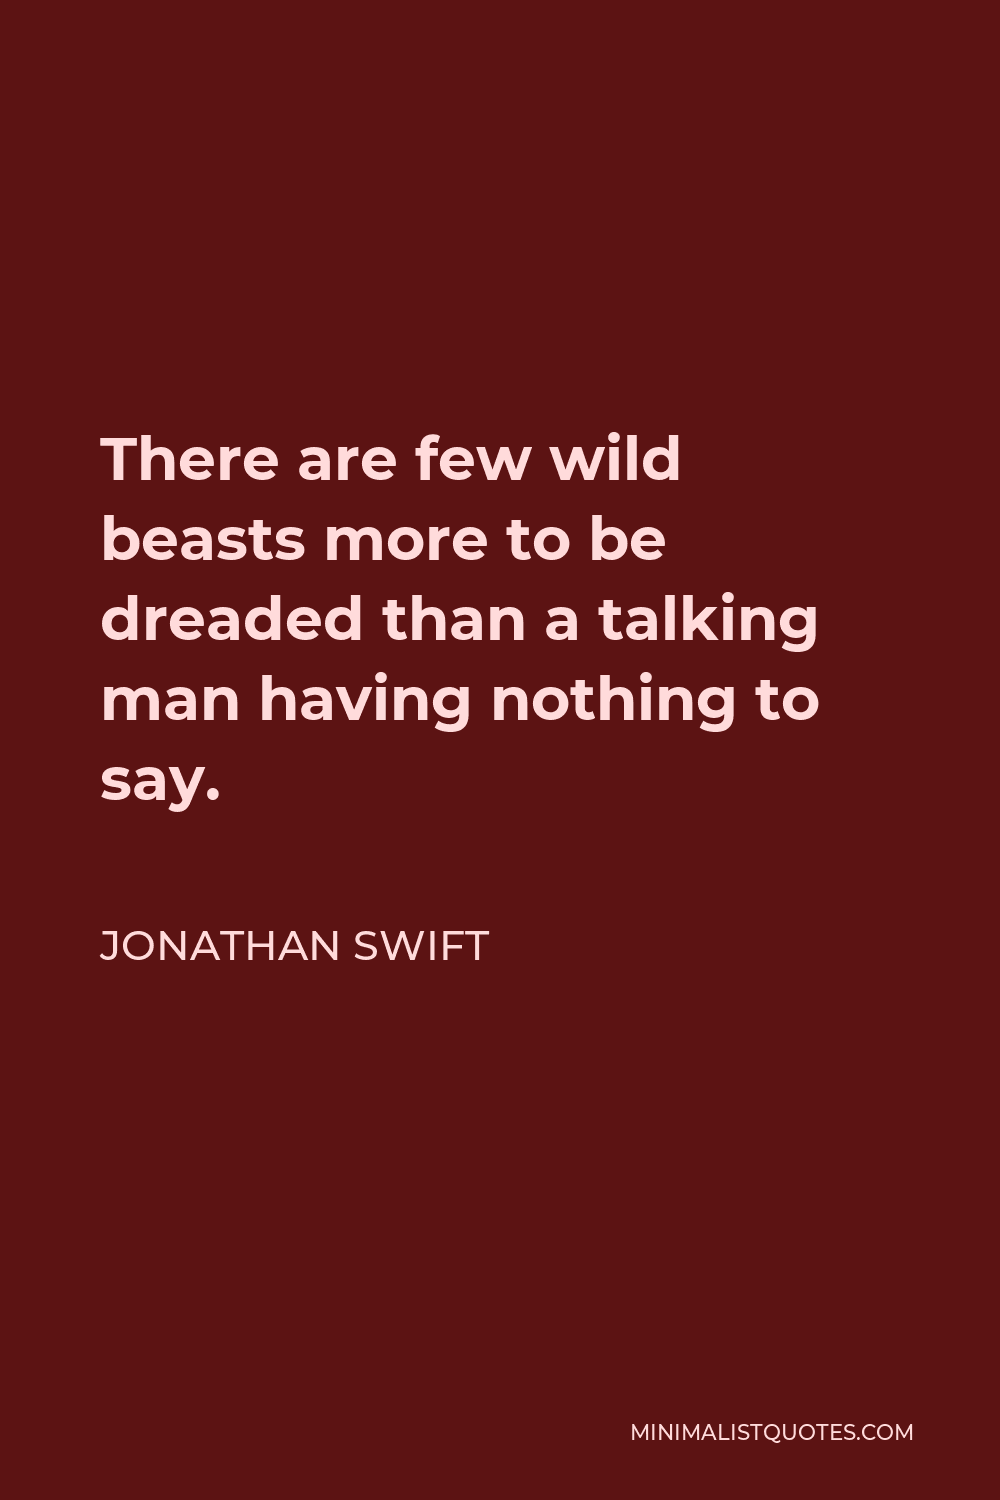 Jonathan Swift Quote - There are few wild beasts more to be dreaded than a talking man having nothing to say.